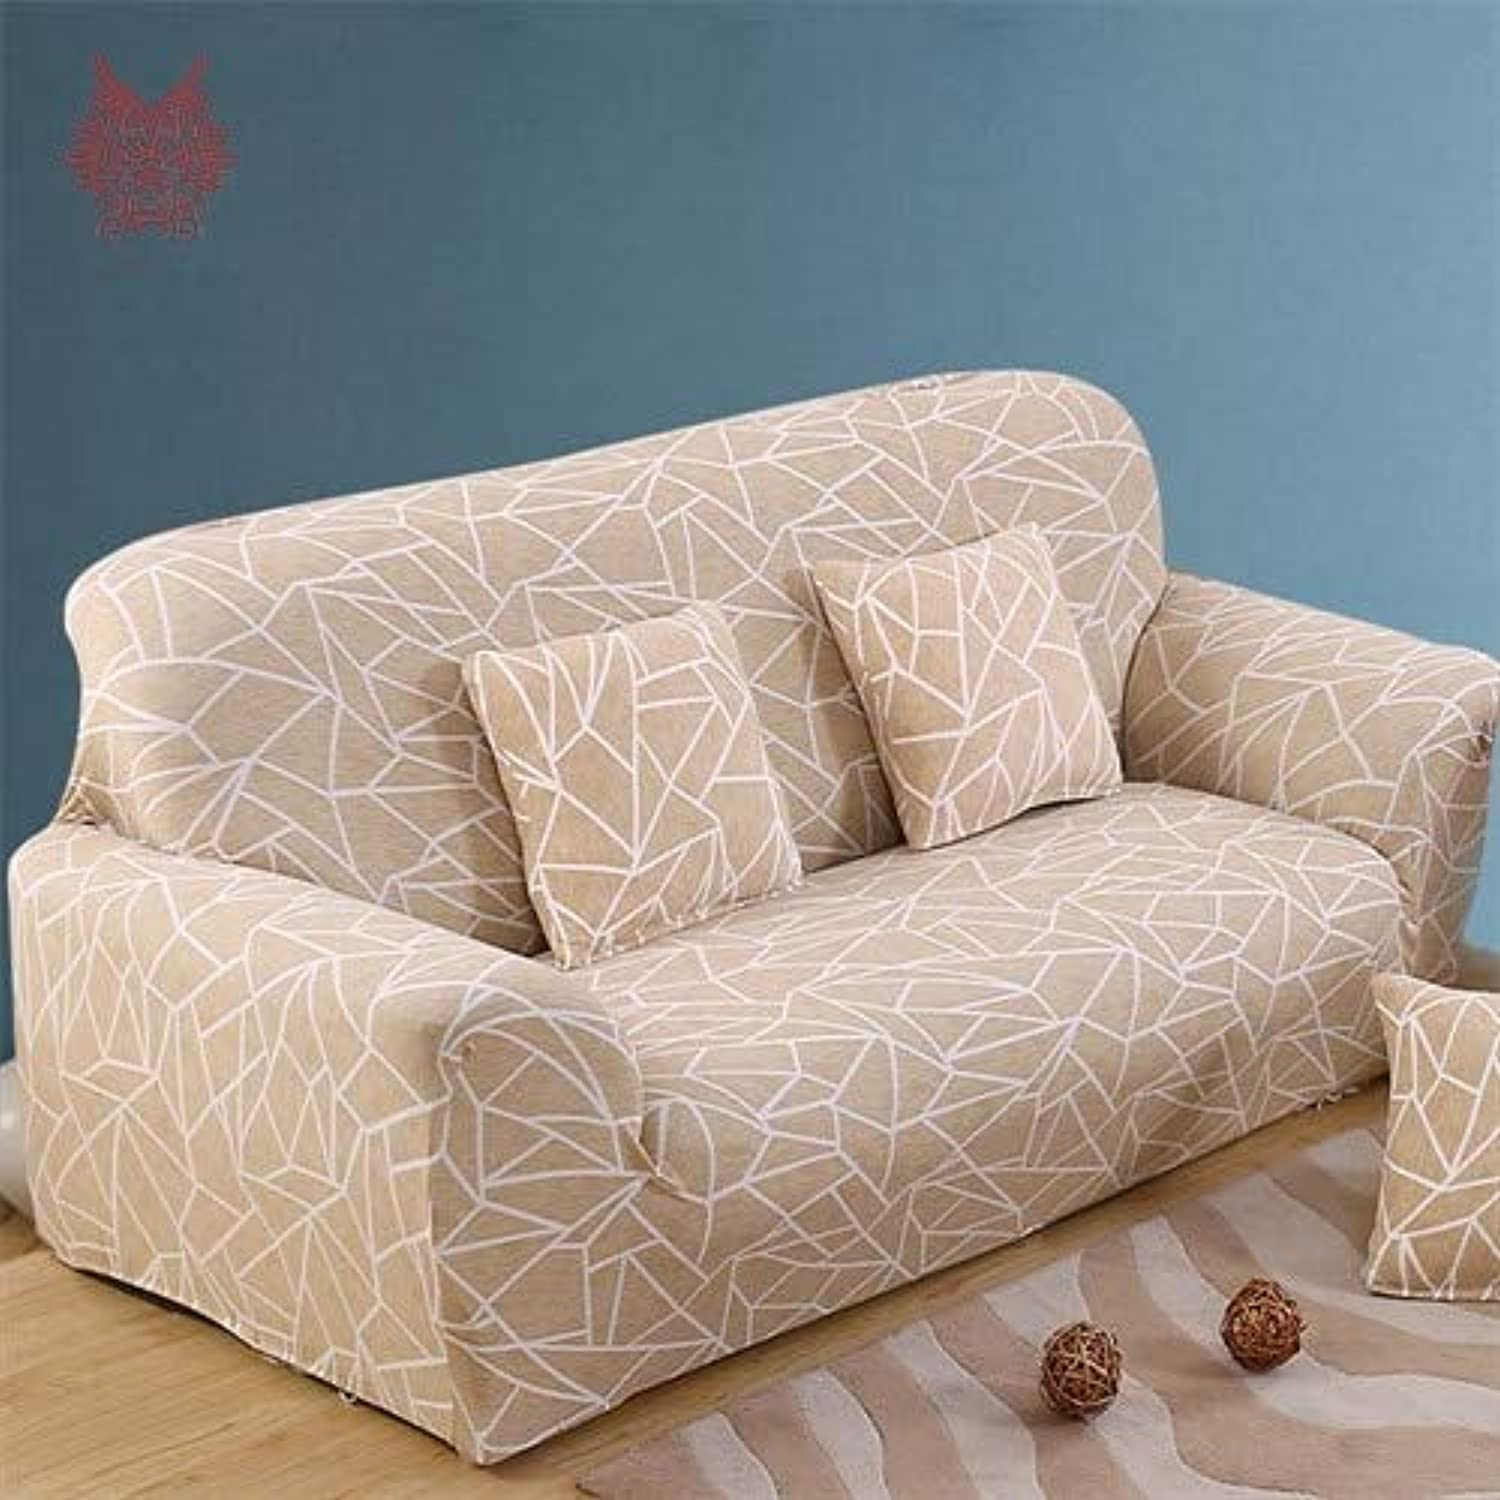 1SEAT 2SEATS 3SEATS 4SEATS Geometric Print Stretch seat Covers Slipcover Universal Elastic Force Sofa Covers SP3968 Free Ship   Geometric Print, 45cm45cm Pillowcase